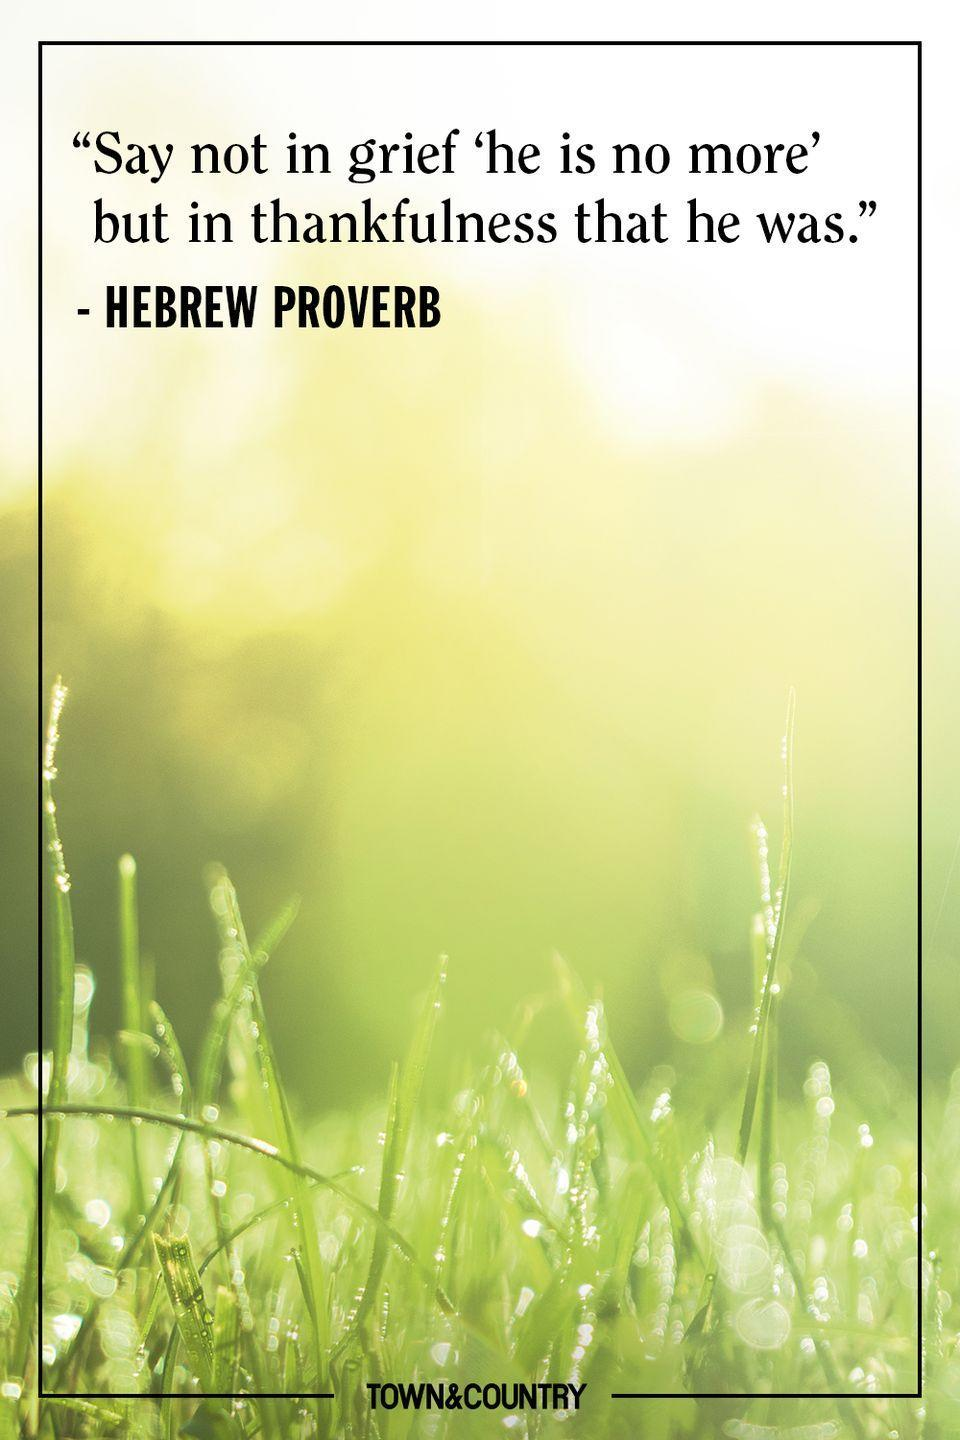 """<p>""""Say not in grief 'he is no more' but in thankfulness that he was.""""</p><p> – Hebrew Proverb</p>"""